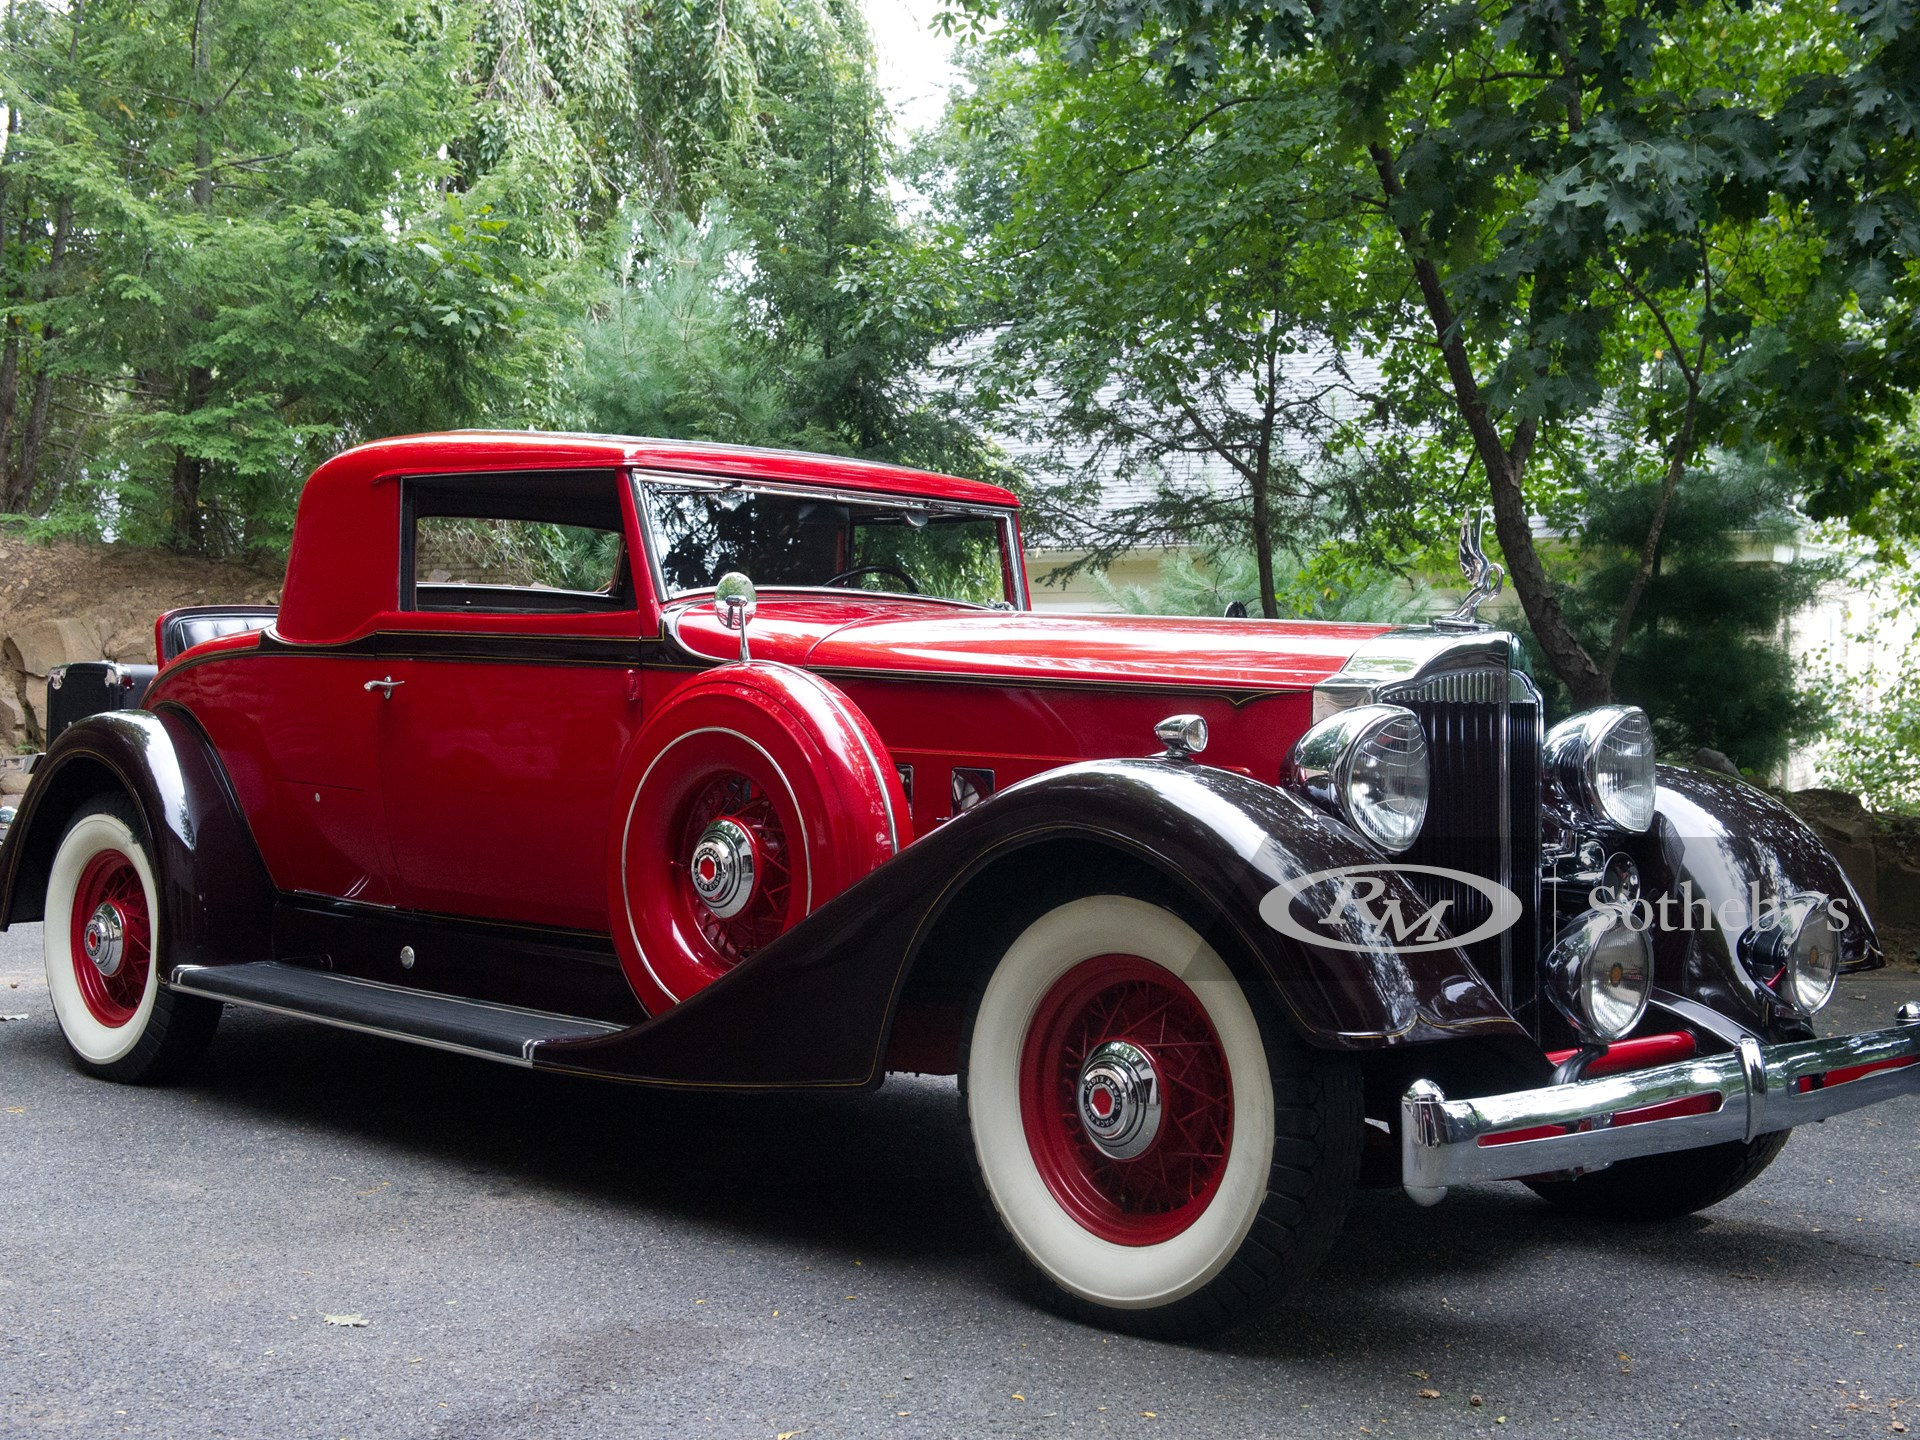 1934 Packard Super 8 Coupe